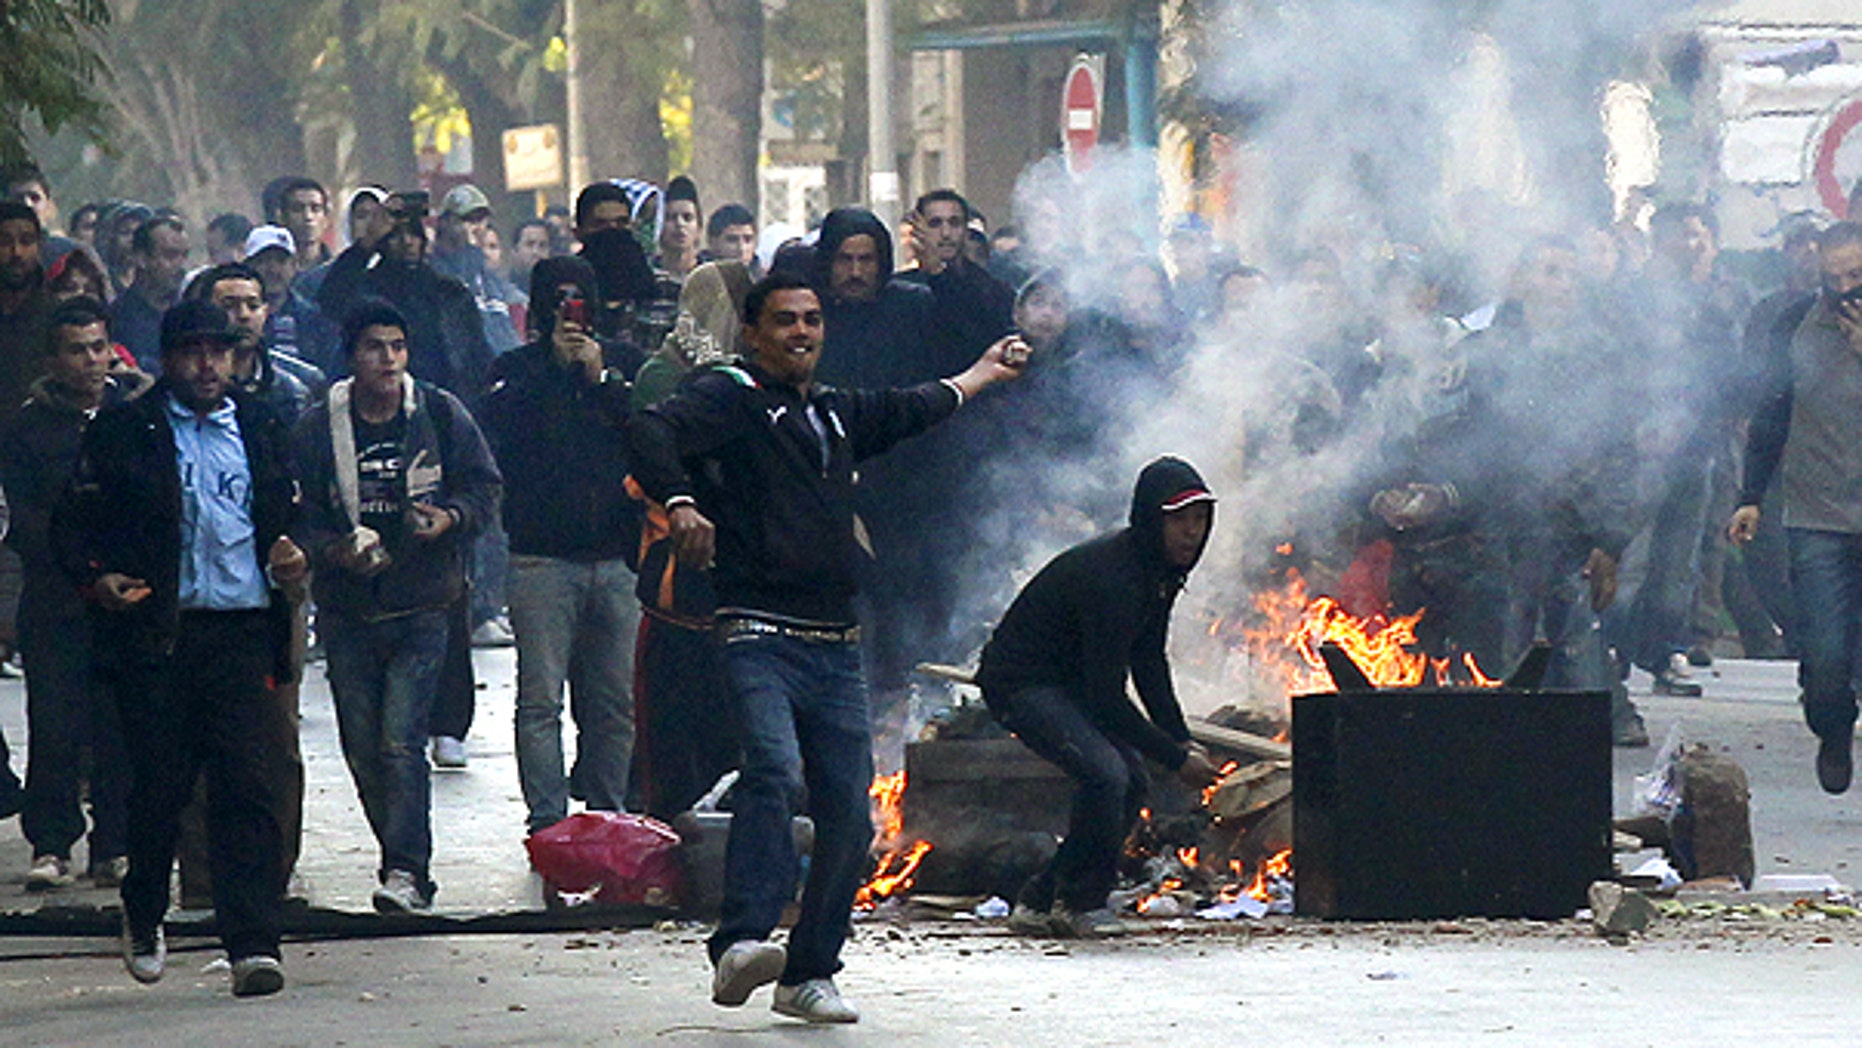 Jan. 14: Demonstrators throws stones at police during clashes in Tunis.